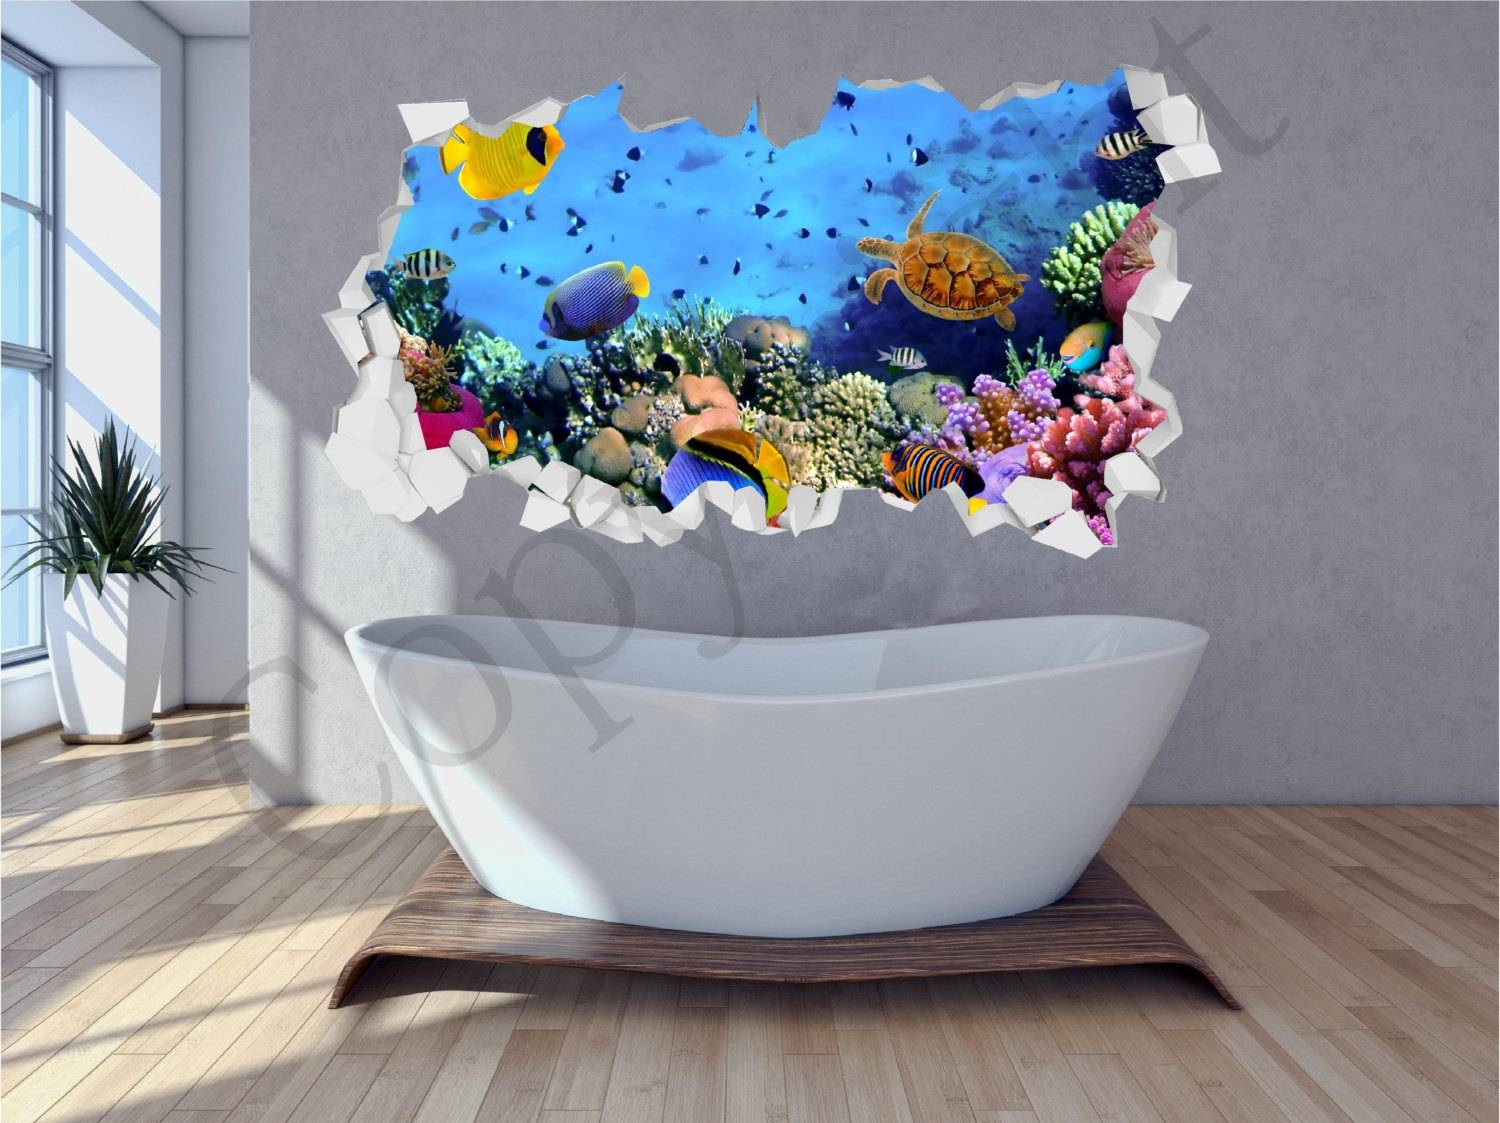 Sea Aquarium Fish Bathroom Under Water Crumbled Wall 3d Huge Pertaining To Latest Fish 3d Wall Art (View 12 of 20)